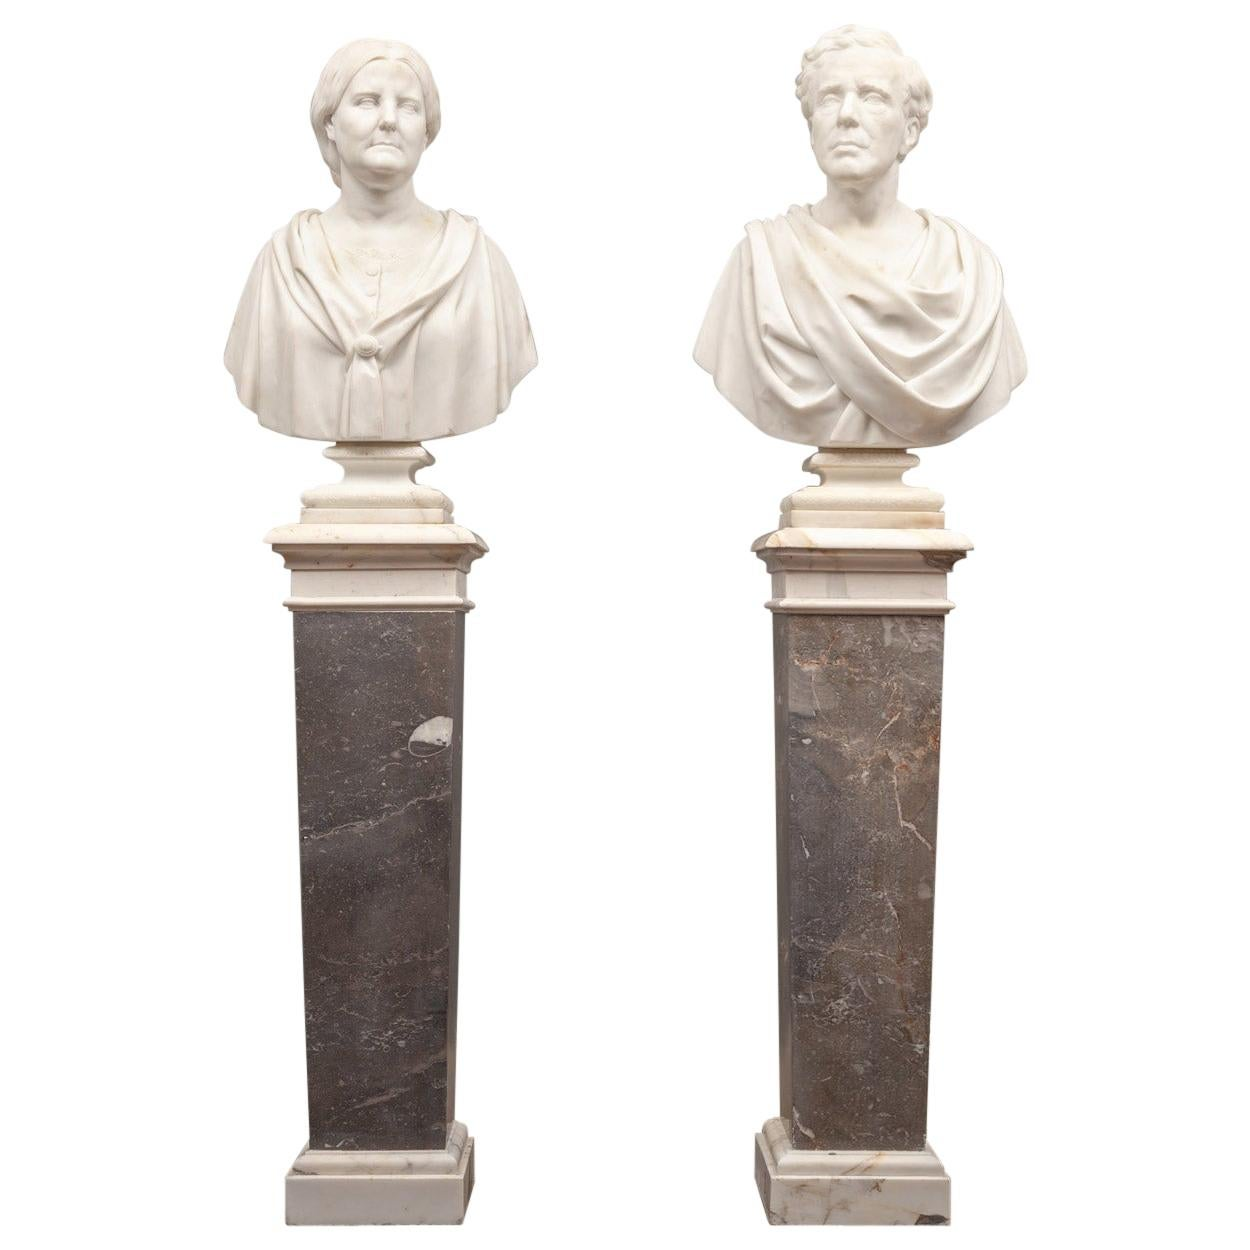 Pair of Antique Marble Busts